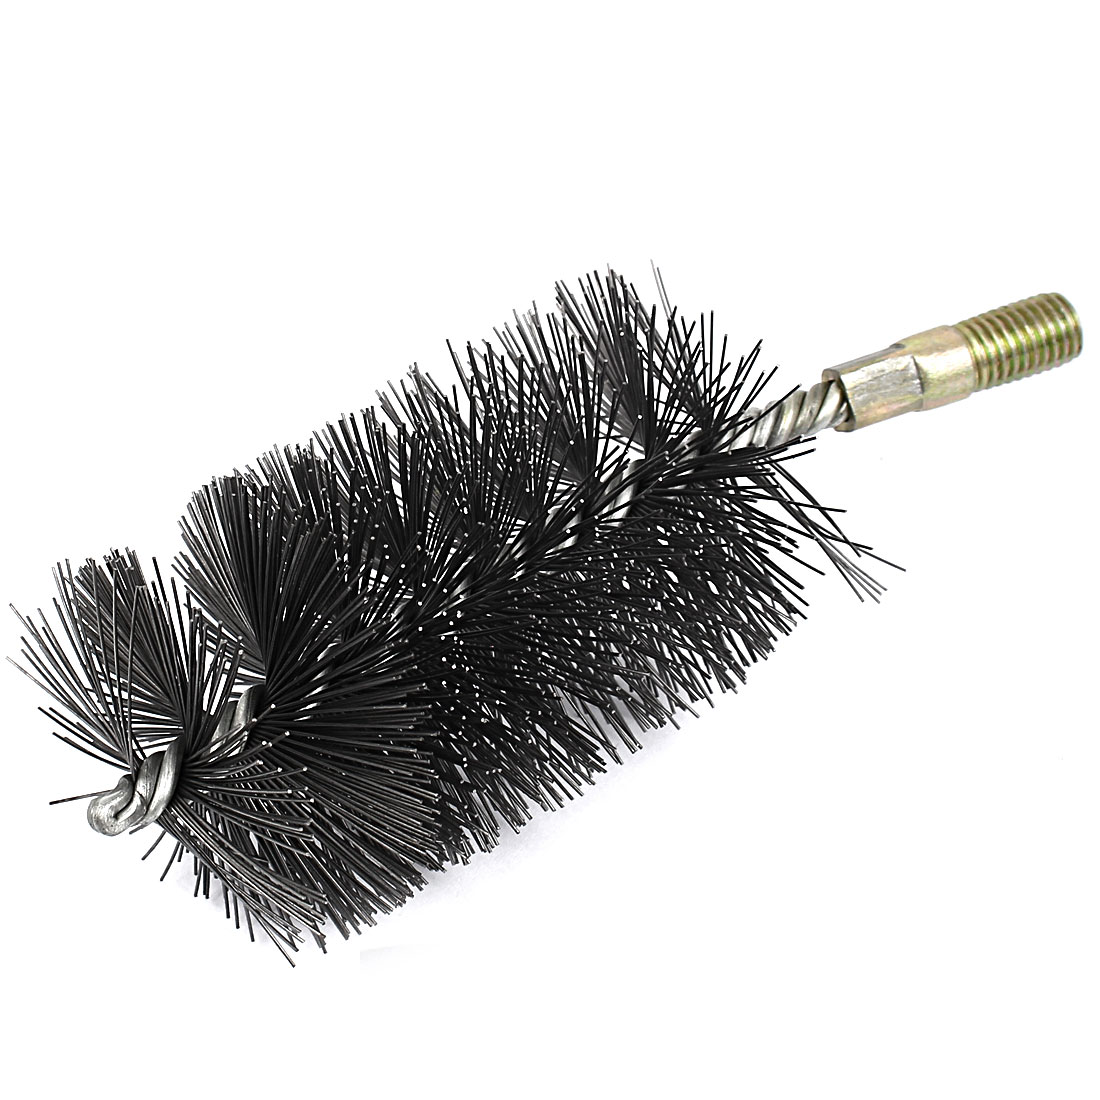 12mm Male Thread 60mm Diameter Round Steel Wire Pipe Tube Cleaning Brush